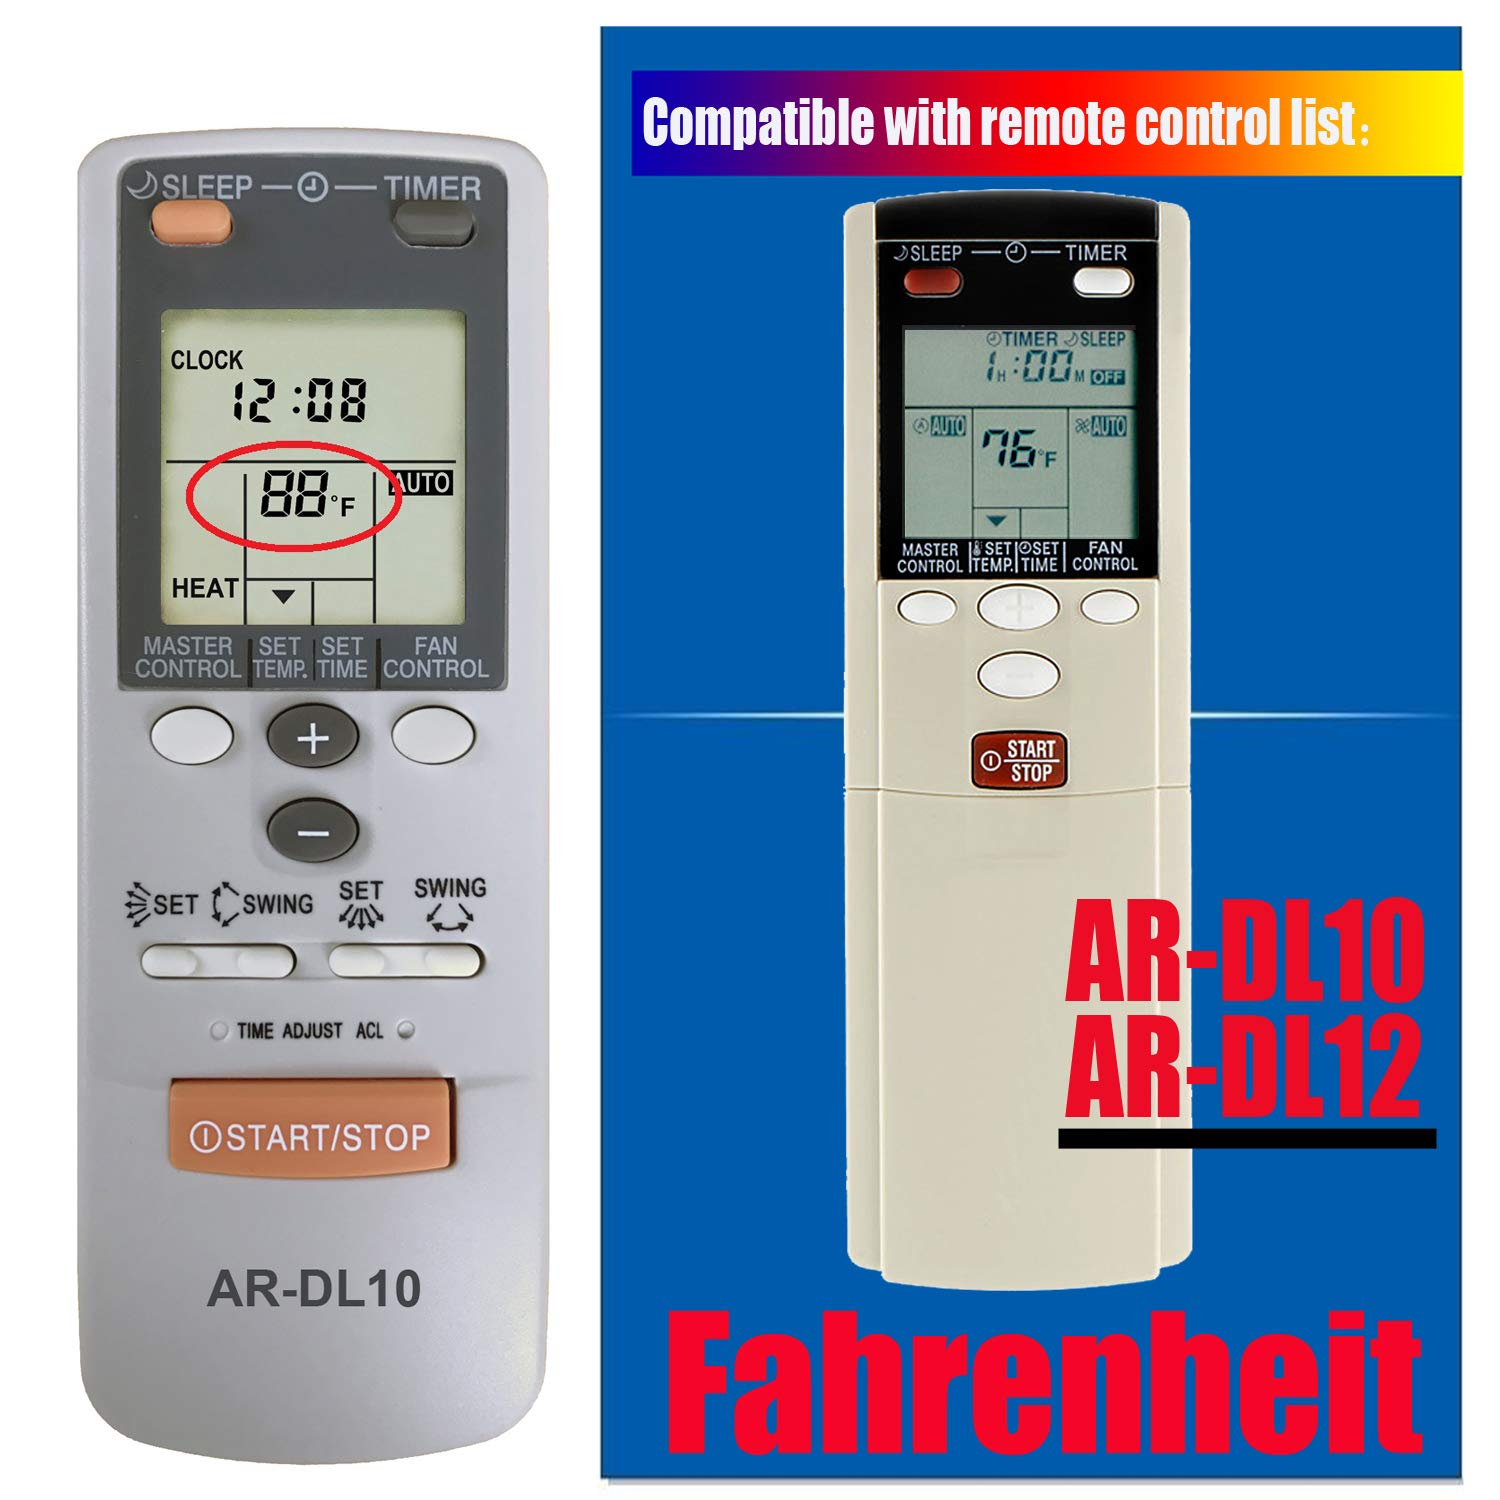 Replacement for Fujitsu Air Conditioner Remote Control for Model AR-DL10 AR-DL12 ASU18C1 ASU18R1 ASU24C1 ASU24R1 ASU30C1 ASU18T ABU22 ABU30 ABU36 (Display in Fahrenheit Only)